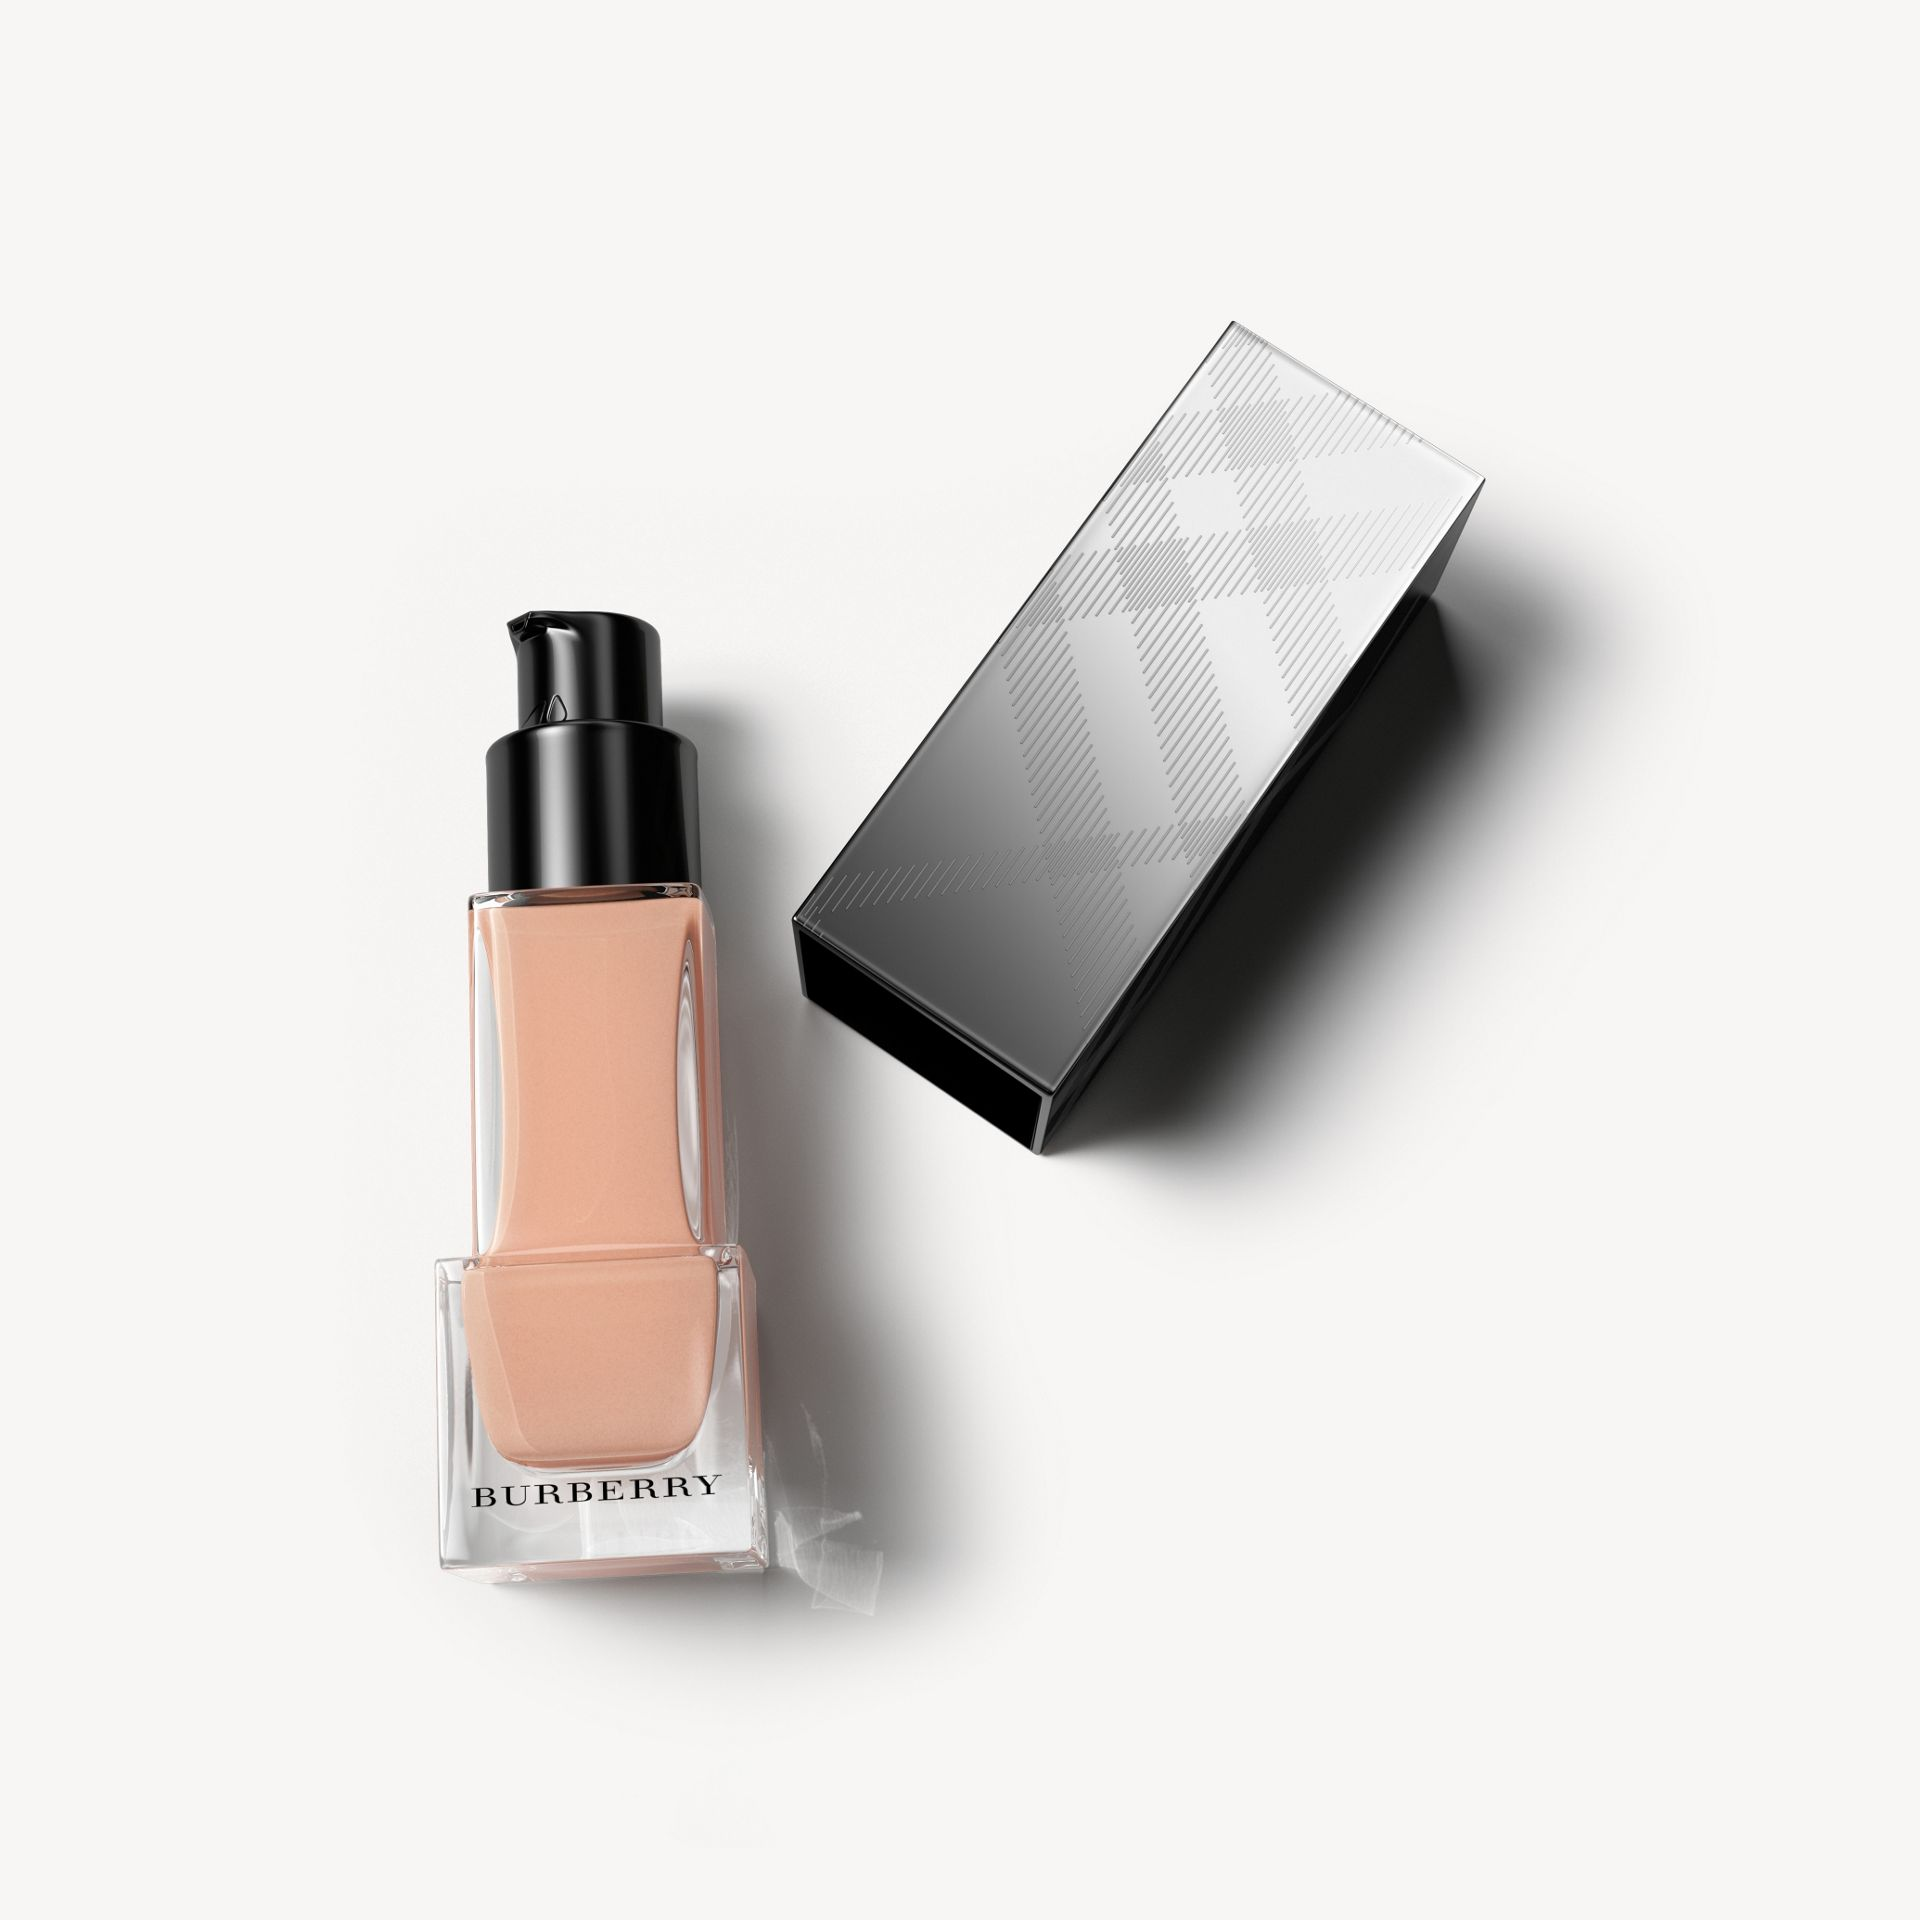 Ochre 20 Fresh Glow Foundation SPF 15 PA+++ – Ochre No.20 - gallery image 1